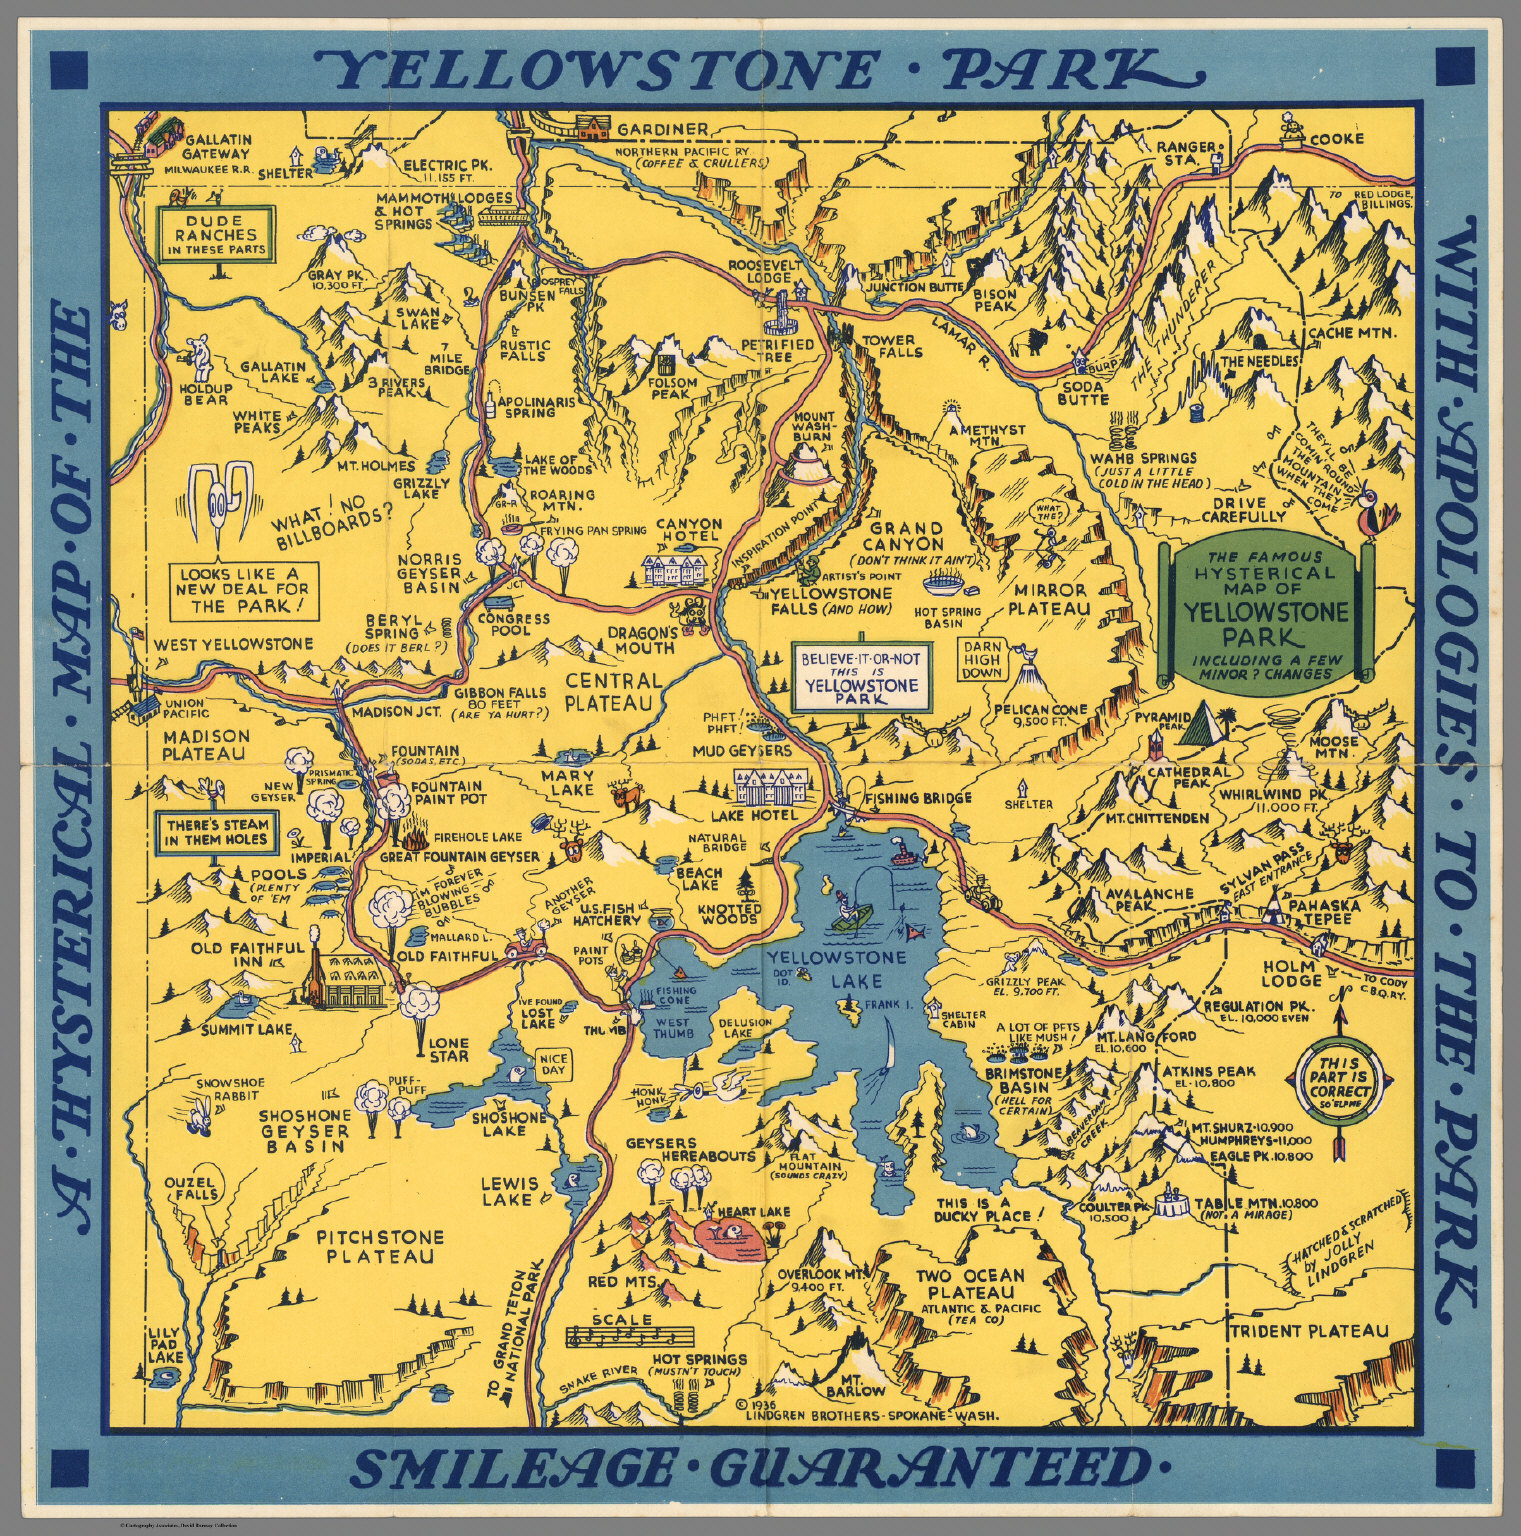 A Hysterical Map Of The Yellowstone Park With Apologies To The - Yellowstone map